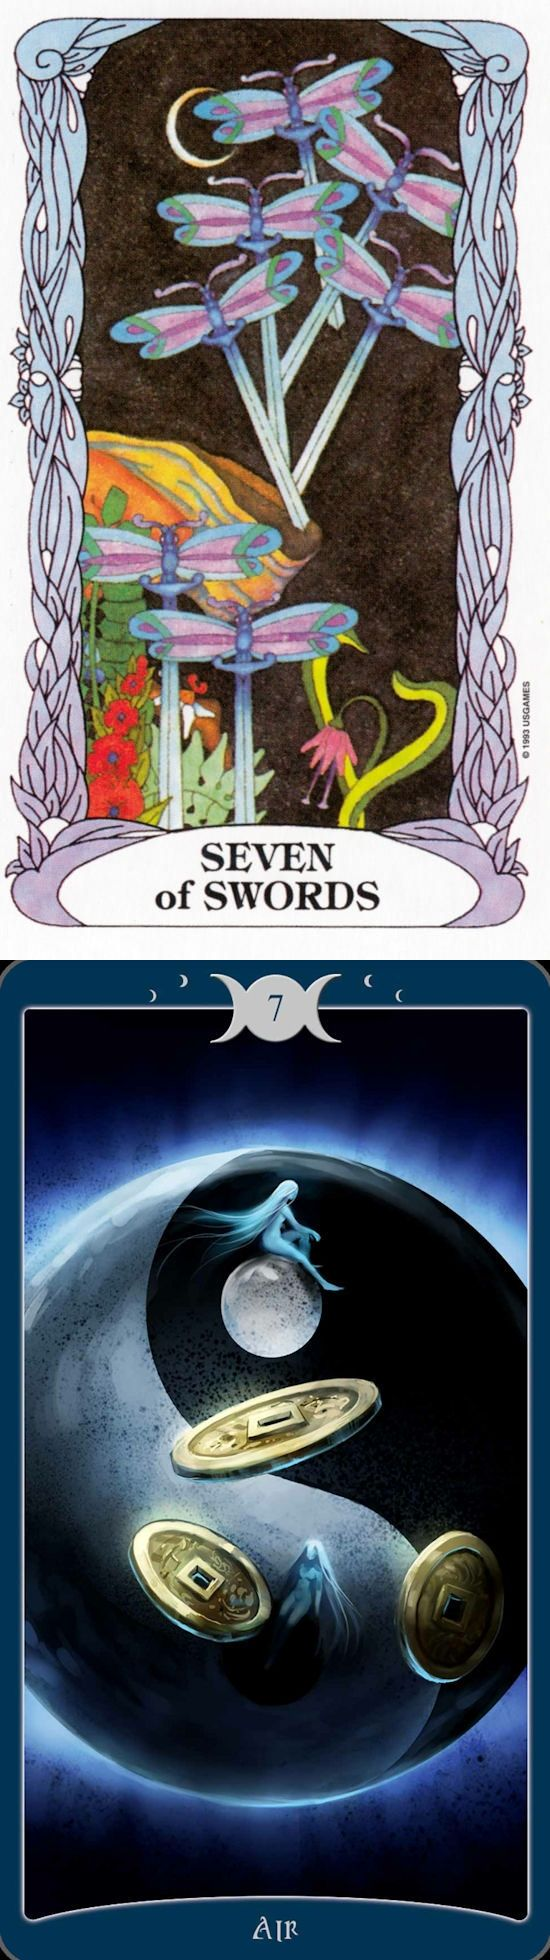 Seven of Swords: pressure to be dishonest/deceptive to succeed in your ambition and become honest (reverse). Moon garden Tarot deck and Book Of Shadows Tarot deck: internet tarot reading, free tarot reading predictions vs free online tarot reading. Best 2018 tarot spreads layout and psychic readings free. #oldways #justice #witchy #divination